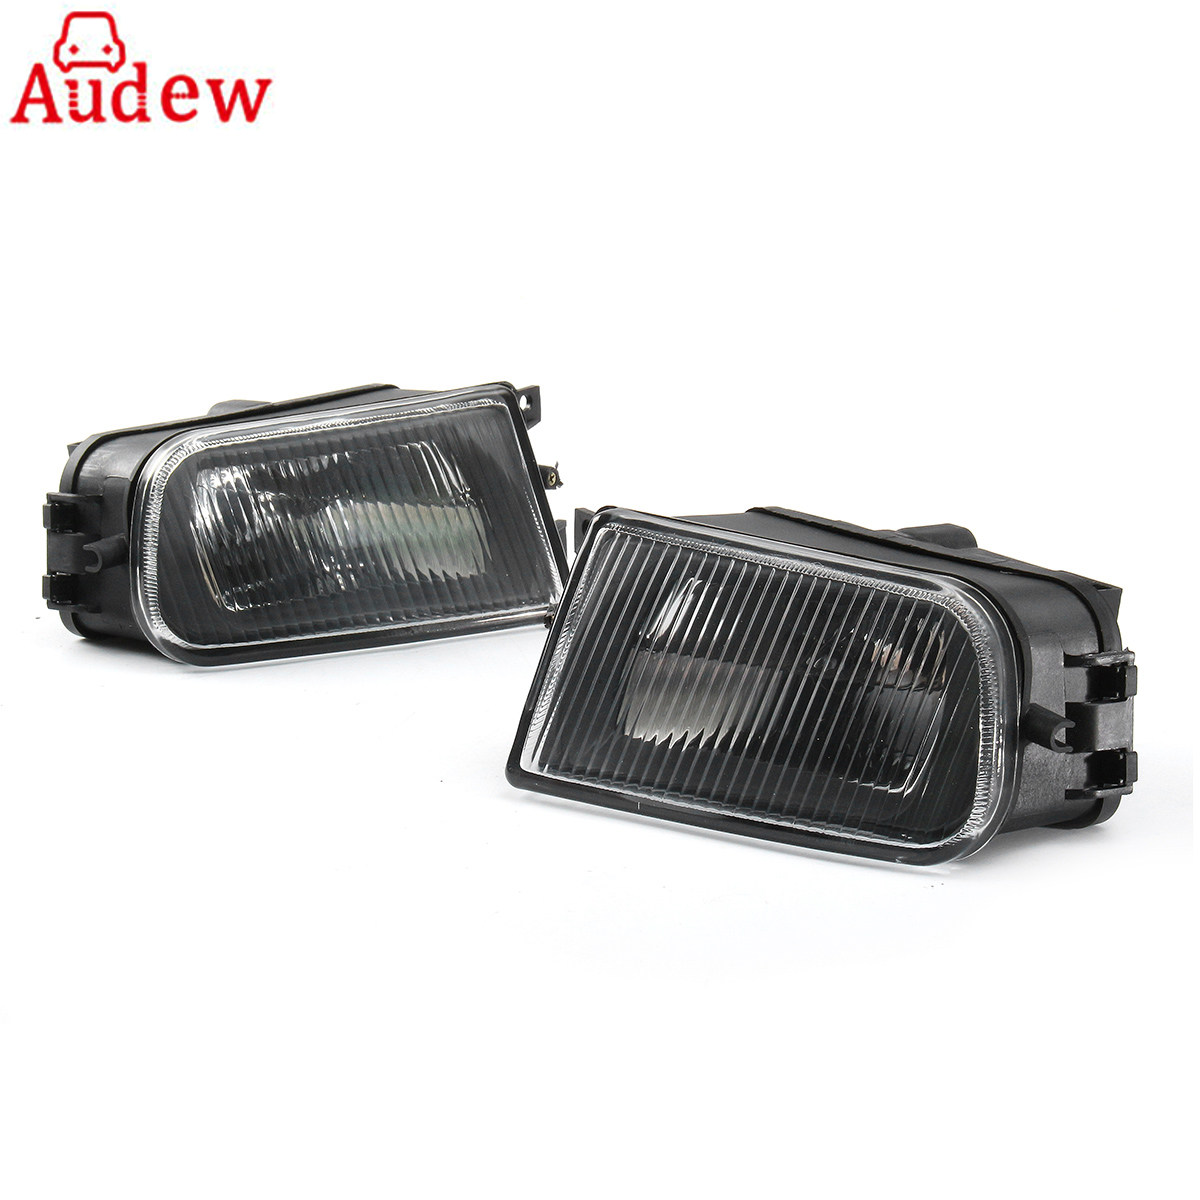 1Pair Black Car Fog Lights Bumper Lamp Housing Left & Right for BMW E39 5-Series 97-00/ Z3 97-01 2pcs right left fog light lamp for b mw e39 5 series 528i 540i 535i 1997 2000 e36 z3 2001 63178360575 63178360576